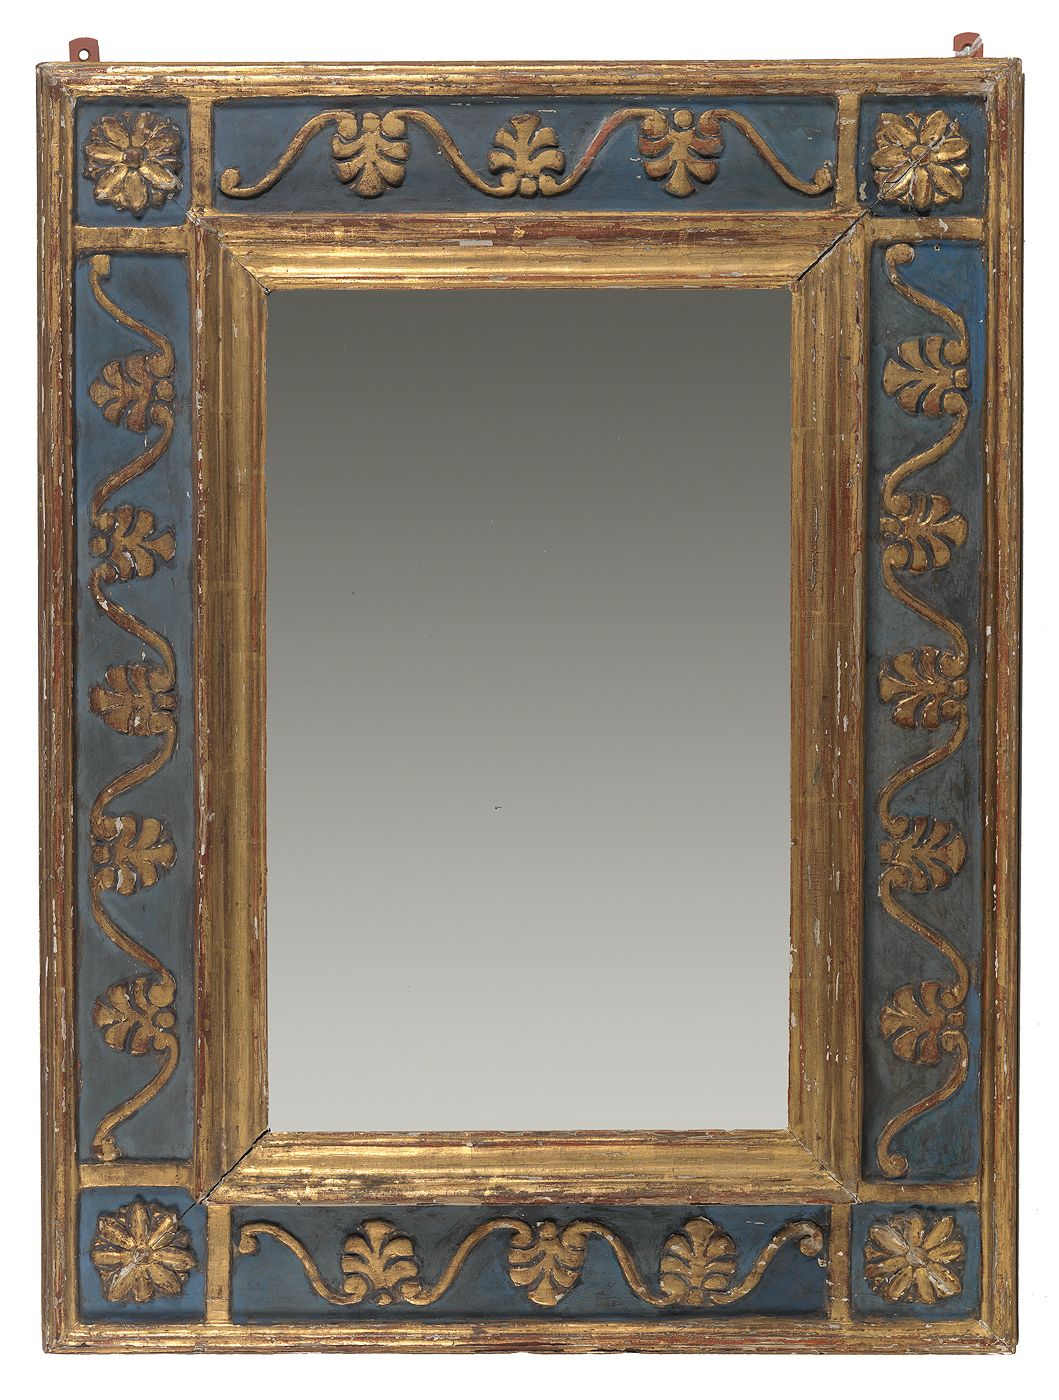 Mirror Frame by Charles Prendergast ca. 1907-1912 at Williams College  Museum of Art